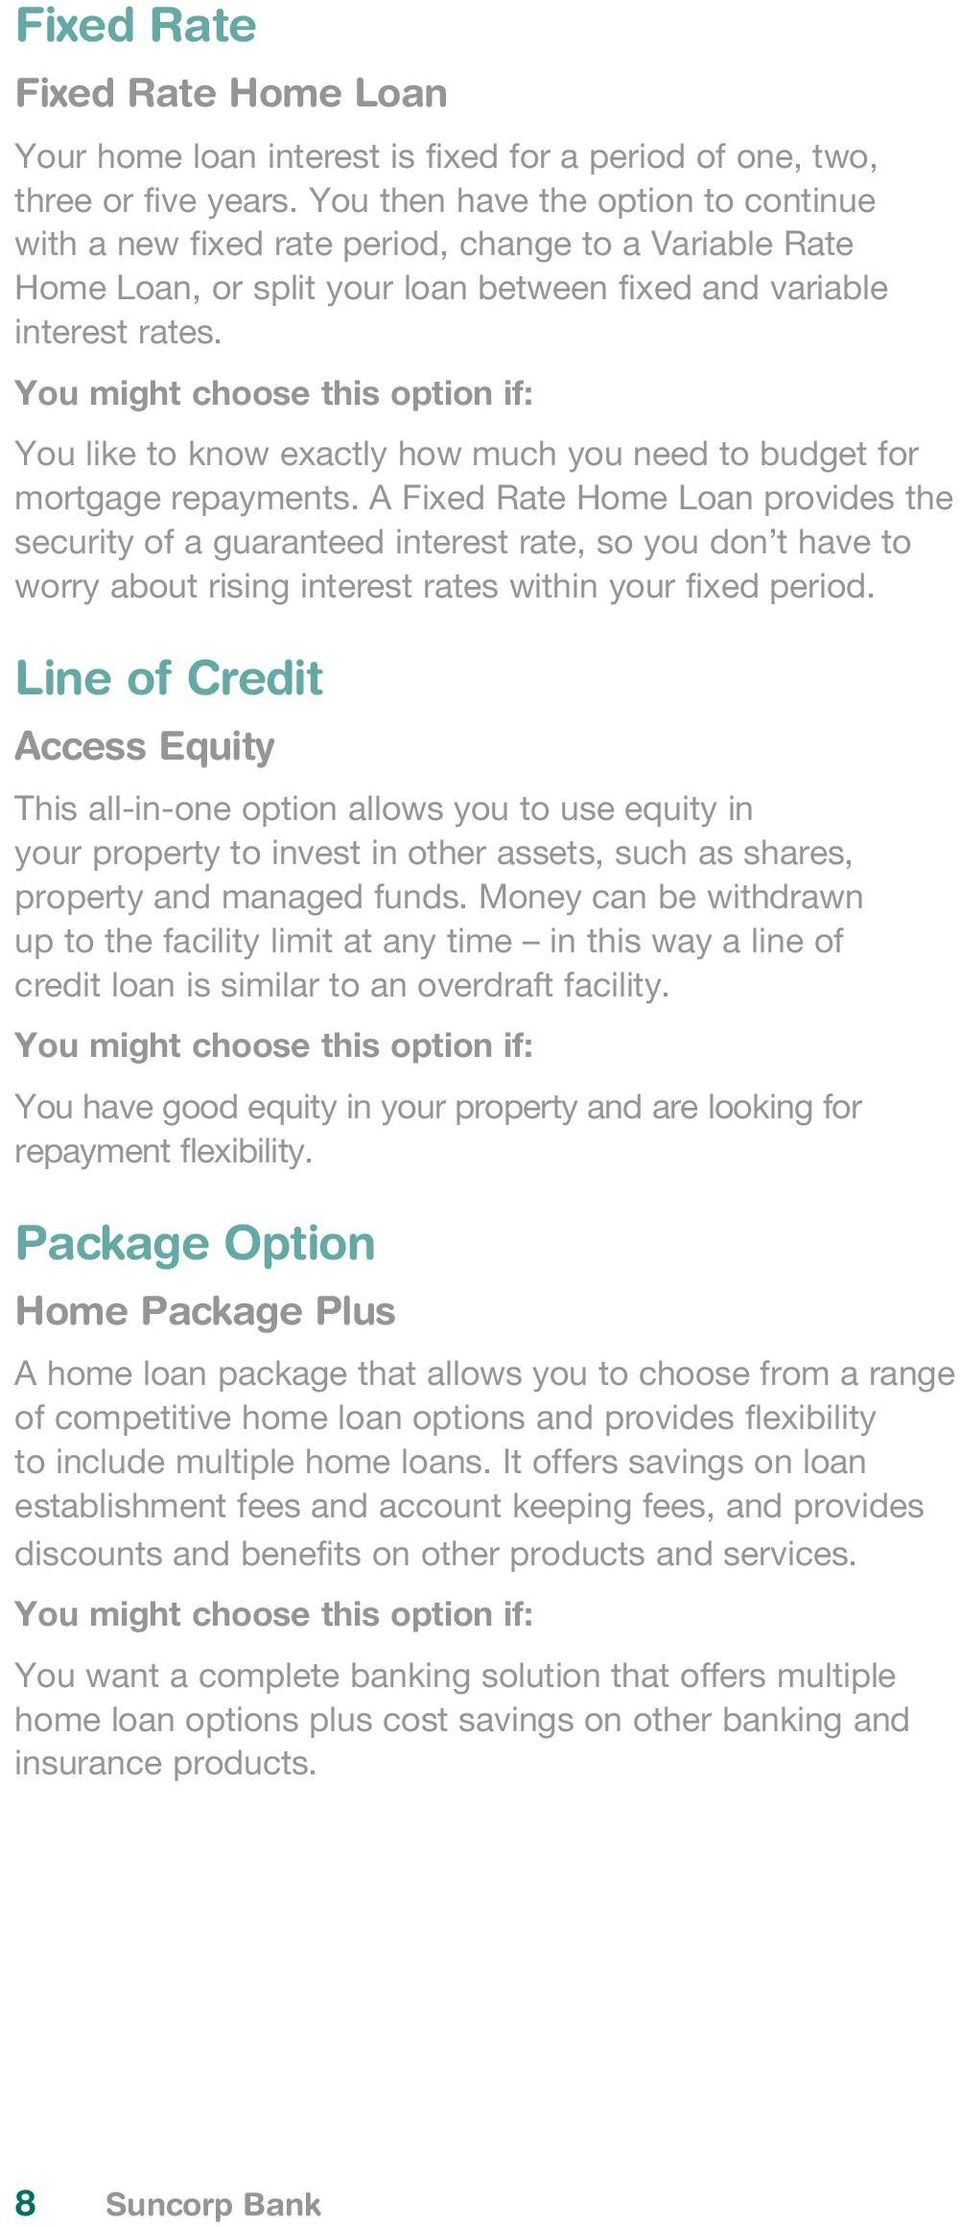 You might choose this option if: You like to know exactly how much you need to budget for mortgage repayments.